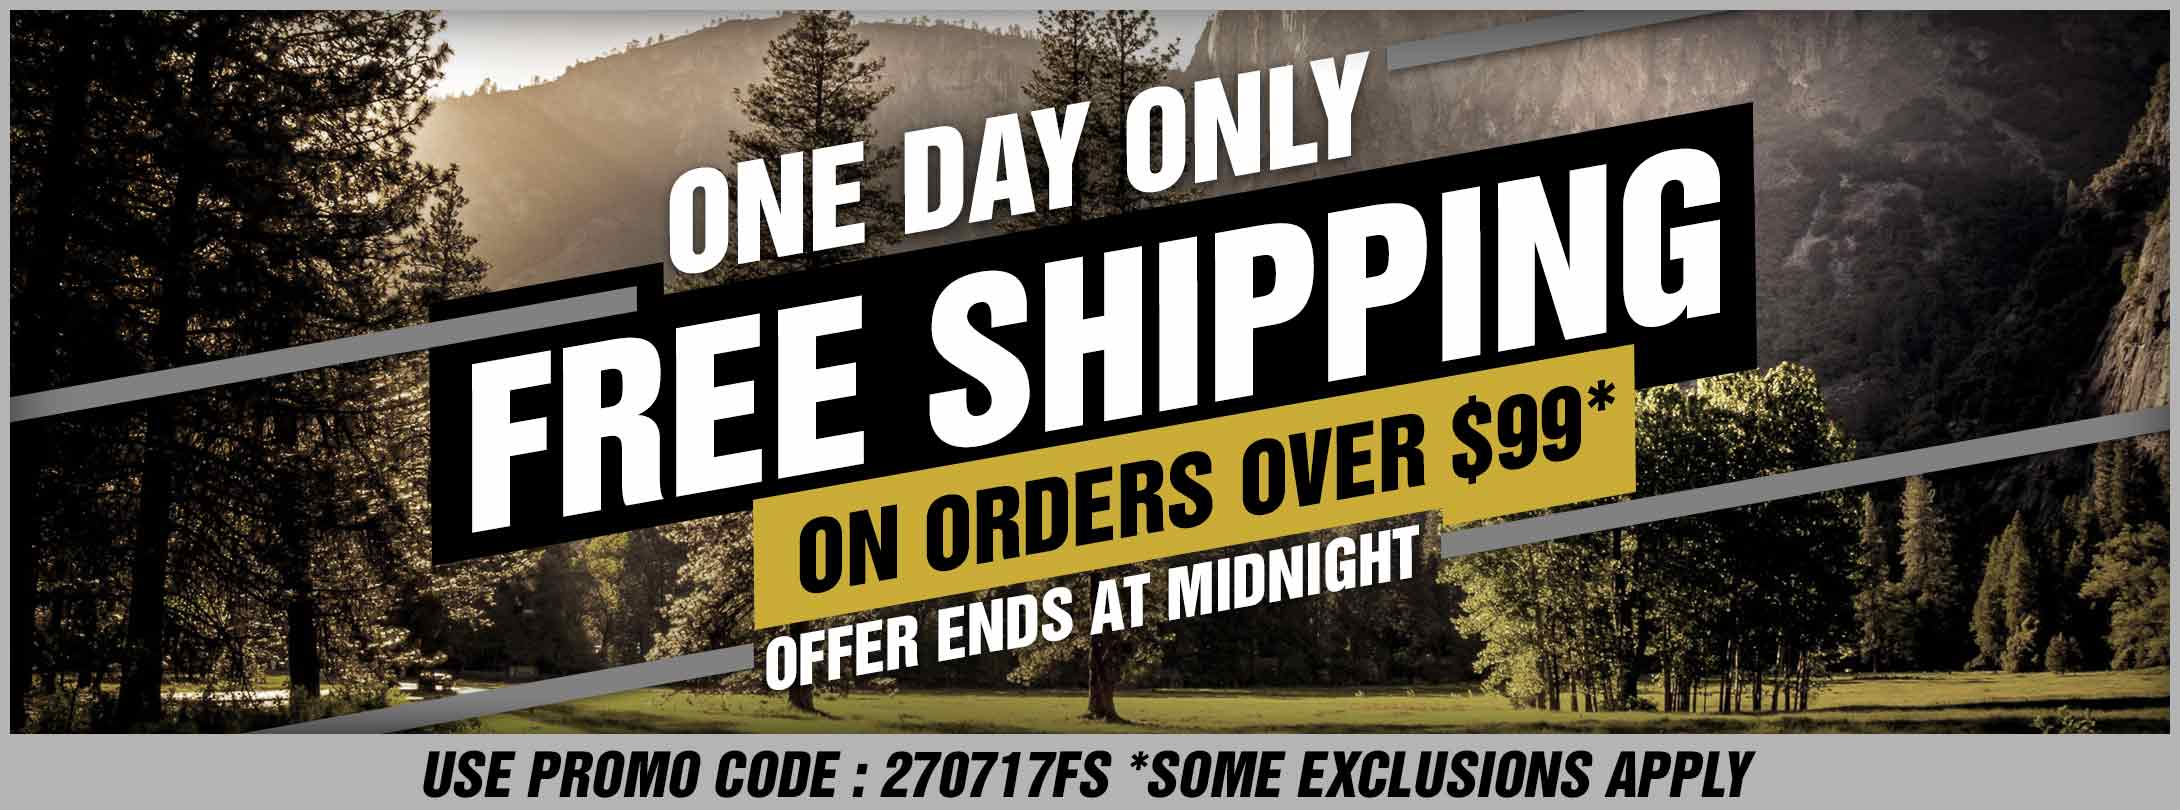 One Day Only! Free Shipping on Orders Over $99 -  Some Exclusions Apply